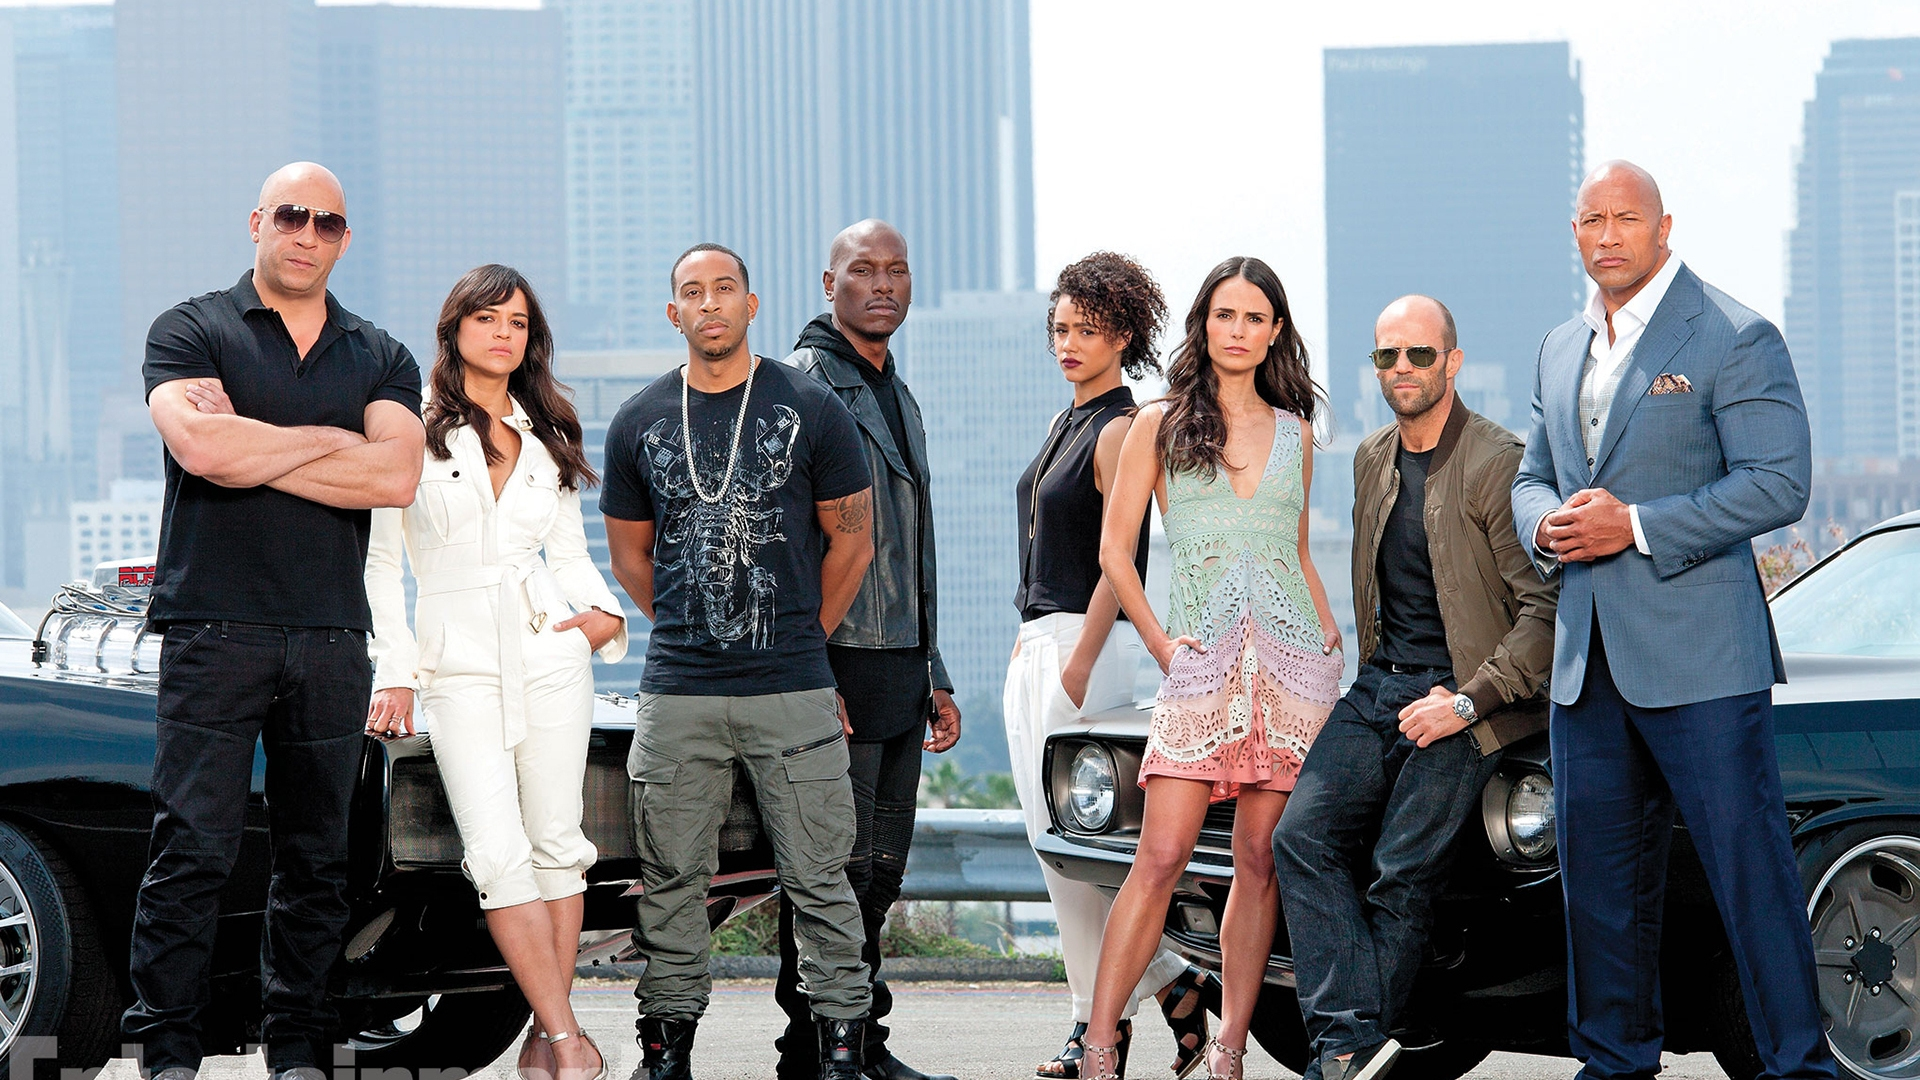 Fast And Furious 7 for 1920 x 1080 HDTV 1080p resolution